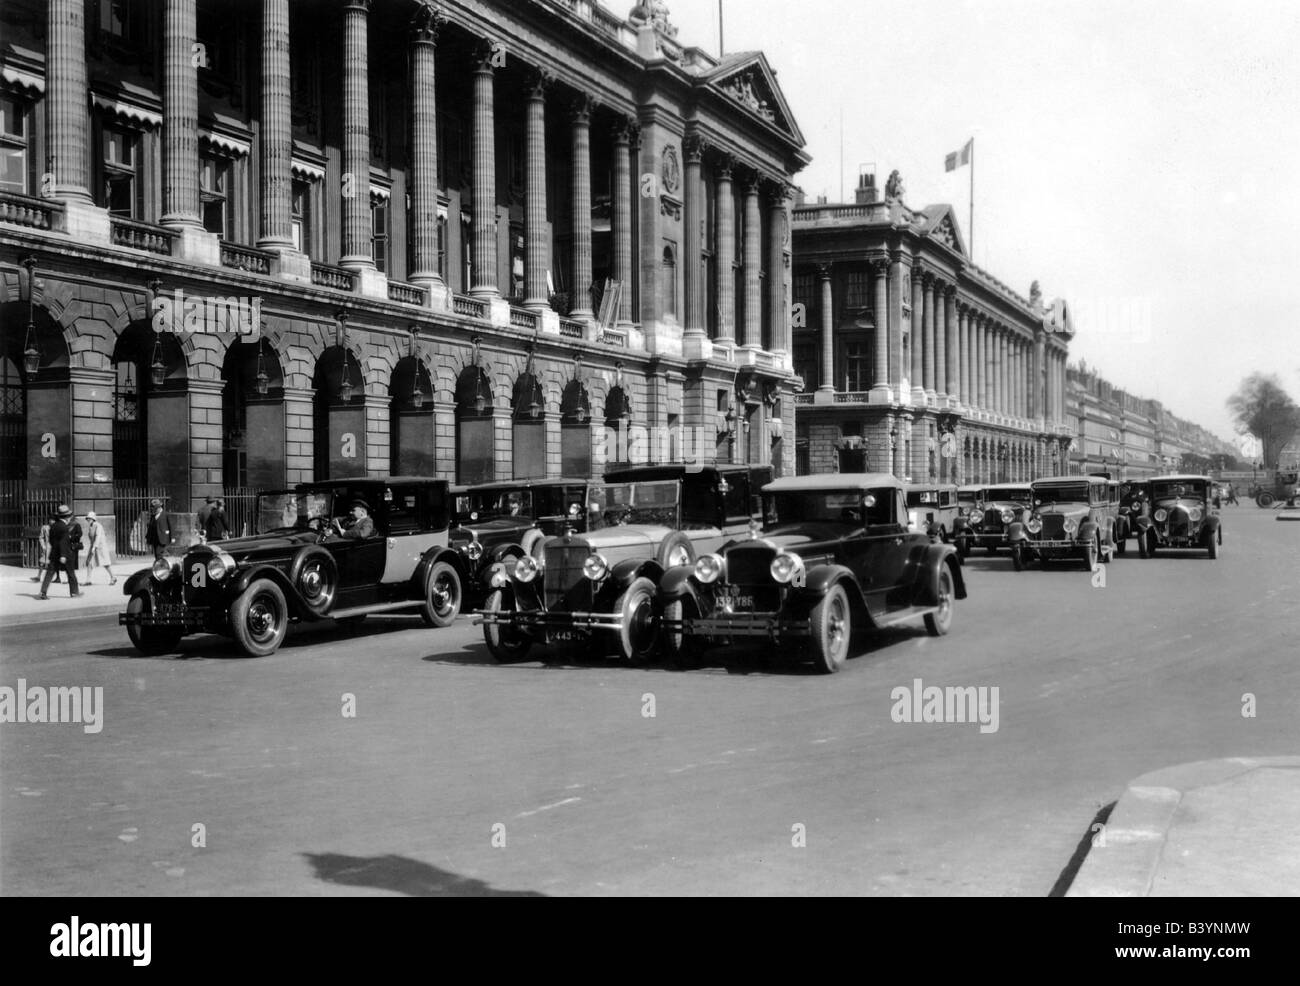 travel / geography, France, Paris, squares, Place de la Concorde, with Hotel Brillond and naval ministry, 1930s, - Stock Image